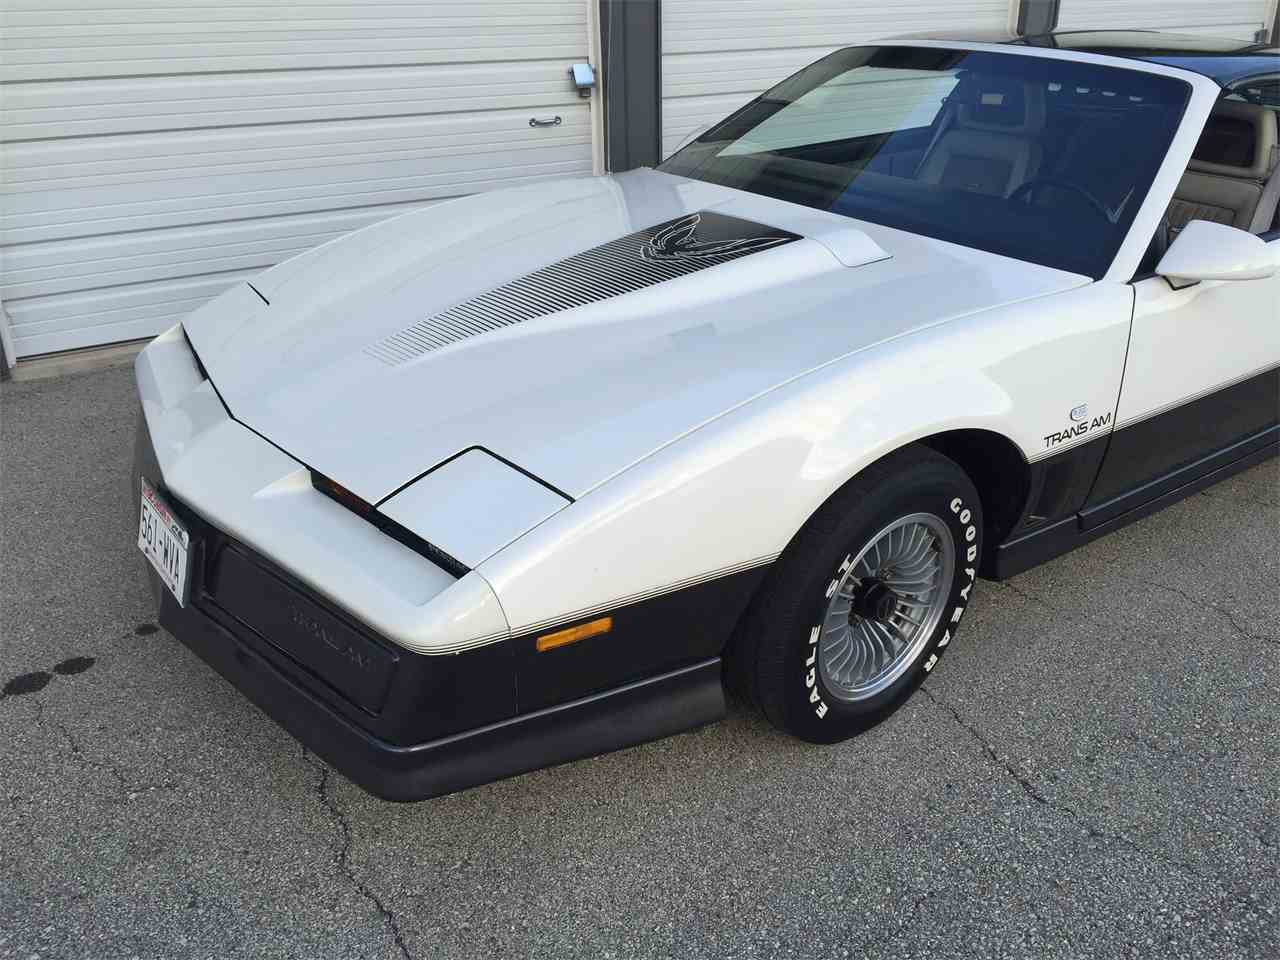 Large Picture of 1983 Pontiac Firebird Trans Am - $9,500.00 Offered by a Private Seller - K9W6